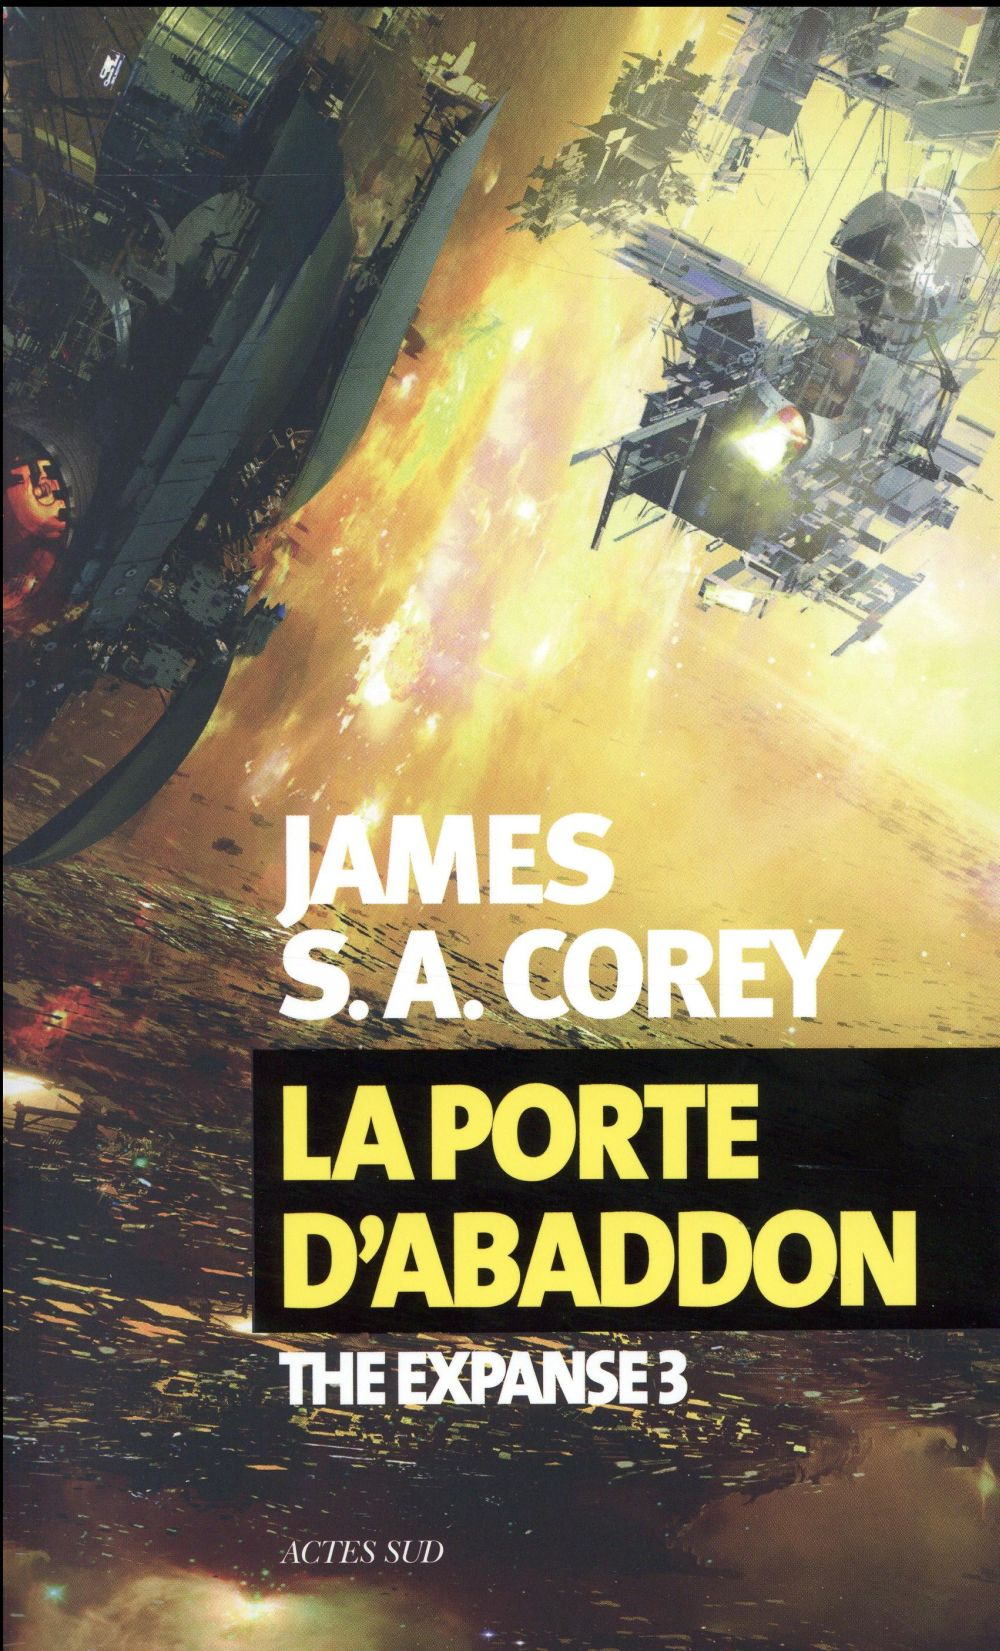 THE EXPANSE T.3  -  LA PORTE D'ABADDON COREY JAMES S. A. Actes Sud